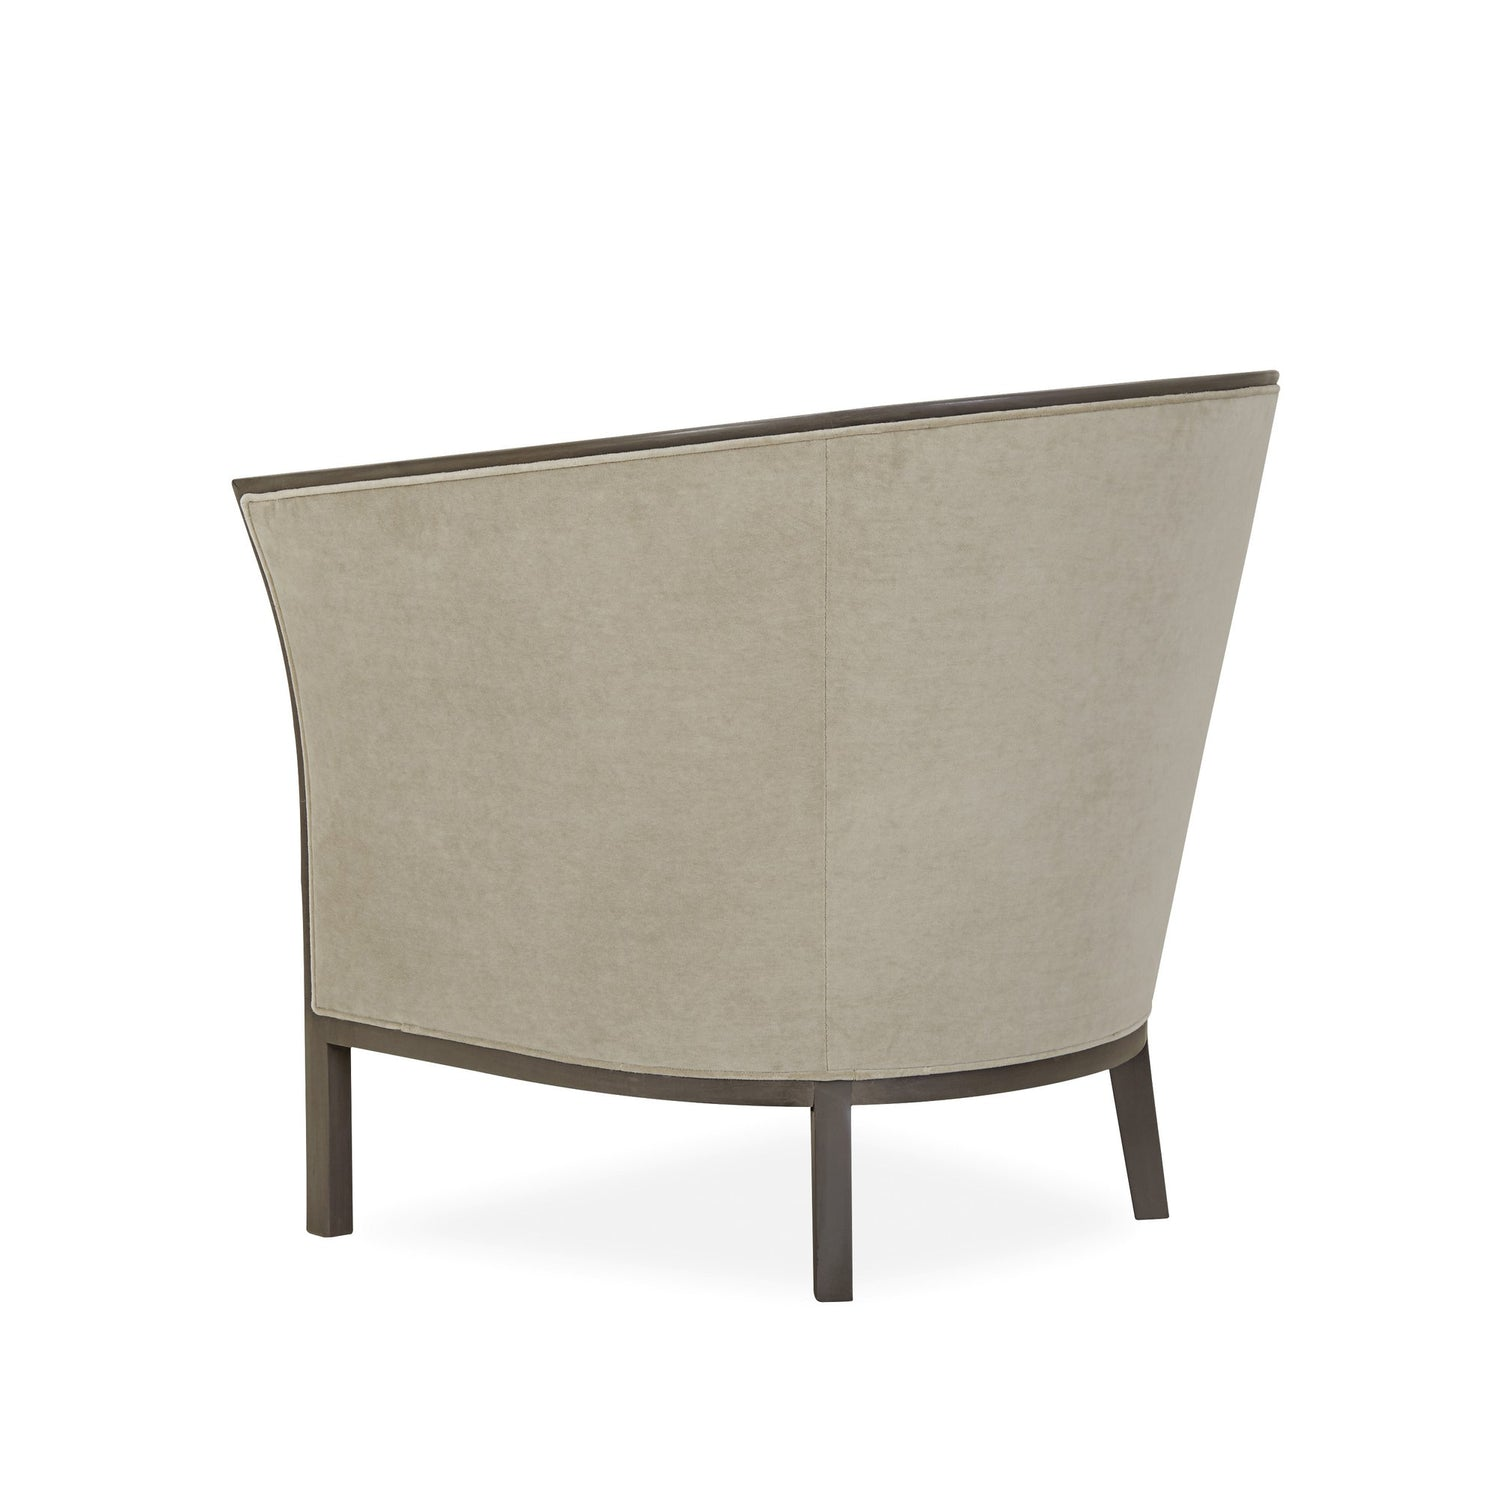 Sanibel Dune | Lee Industries 1033 Chair